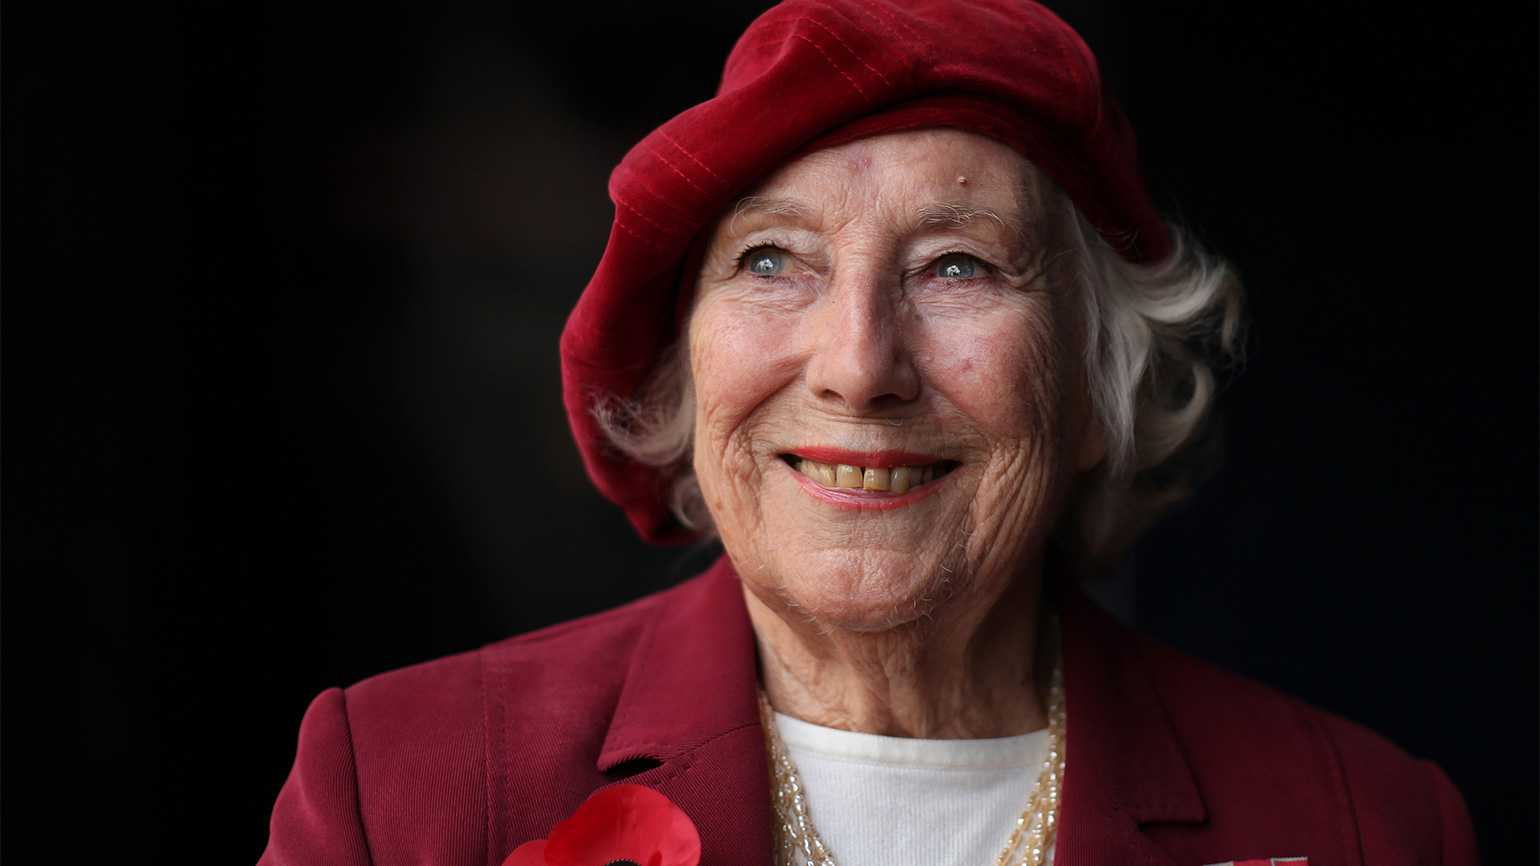 Dame Vera Lynn is celebrating her 101st birthday